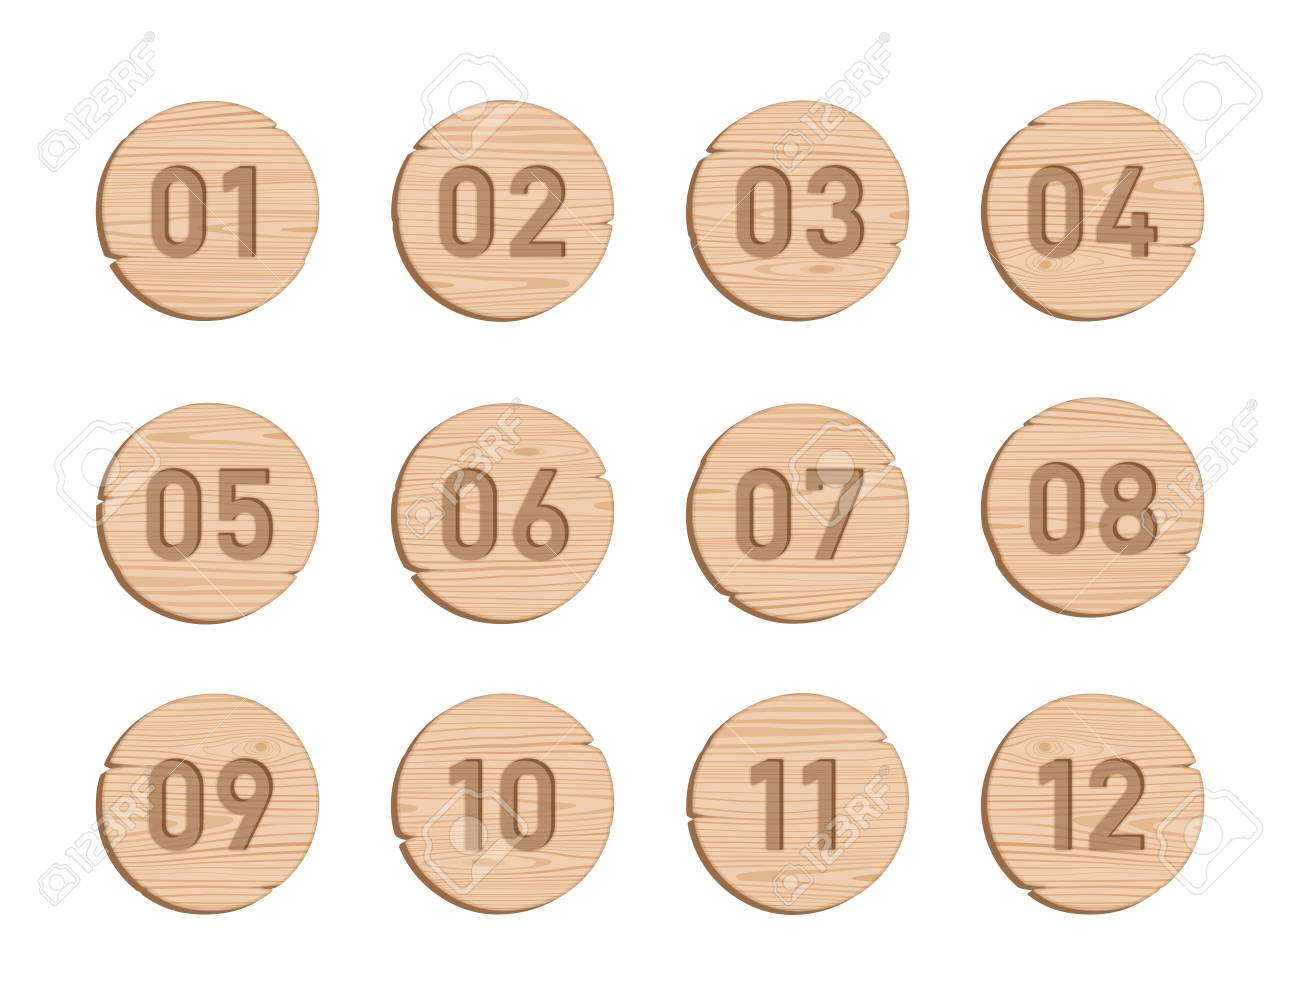 Wood Bullet Point Circles Number 1 to 12 Vector Set - 116874195